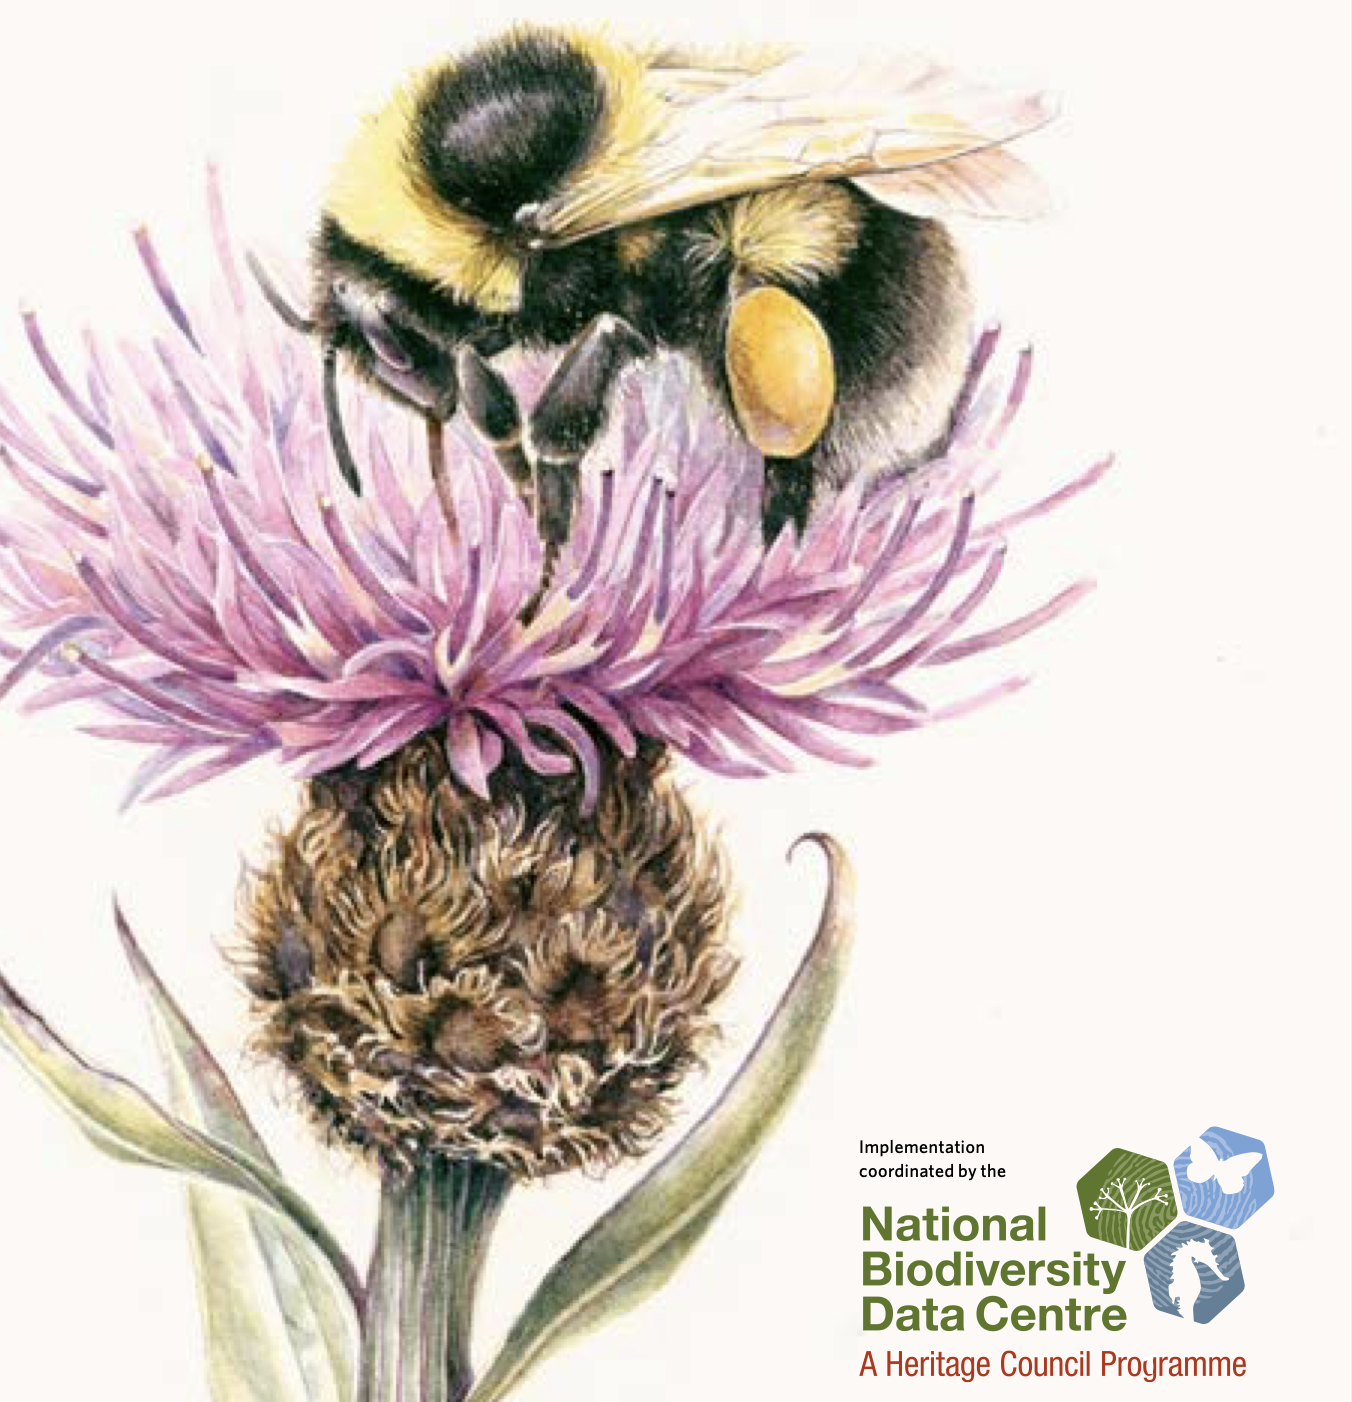 West Cork towns embark on pollinator plans